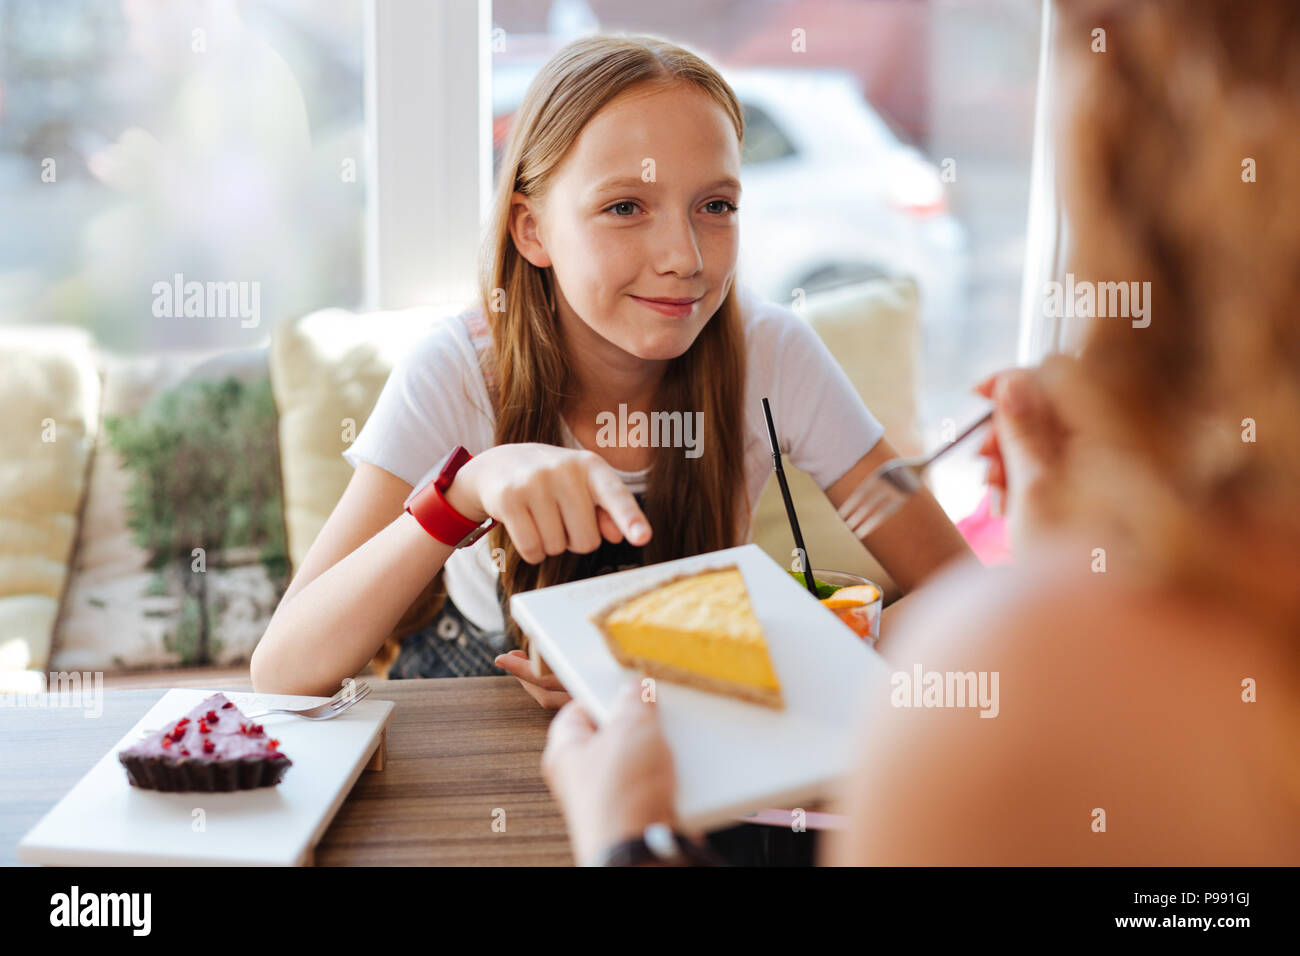 Blonde-haired schoolgirl eating desserts with mother - Stock Image